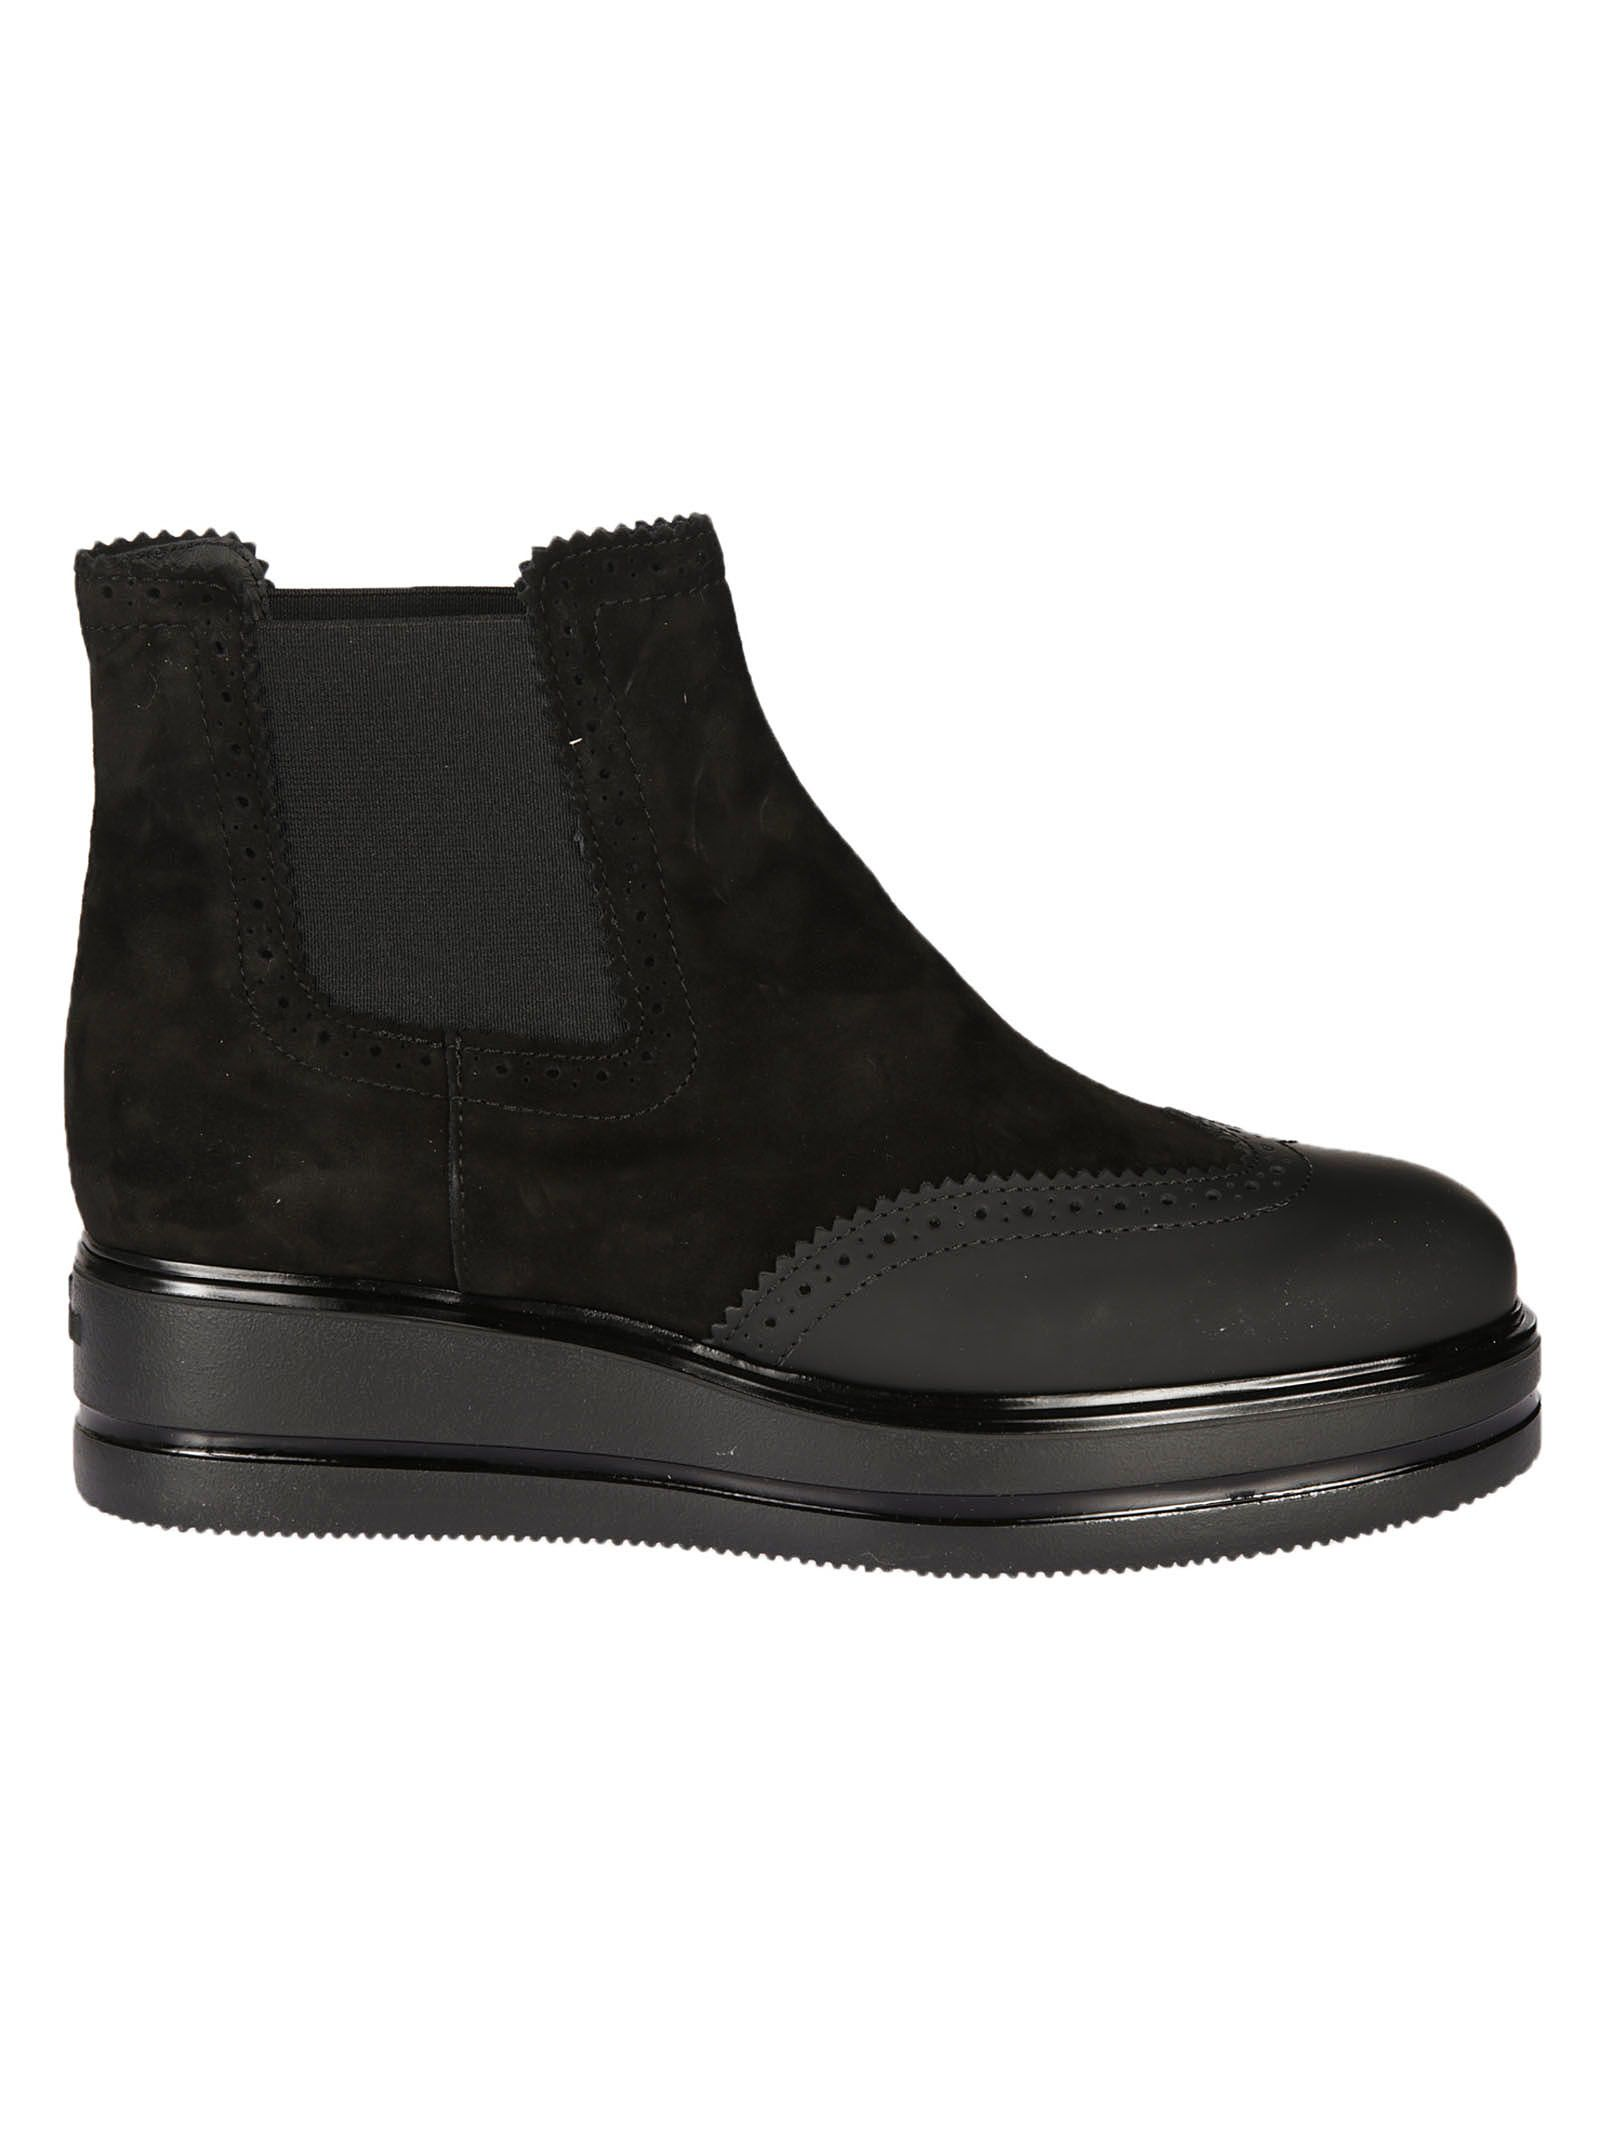 Hogan Brogue Ankle Boots